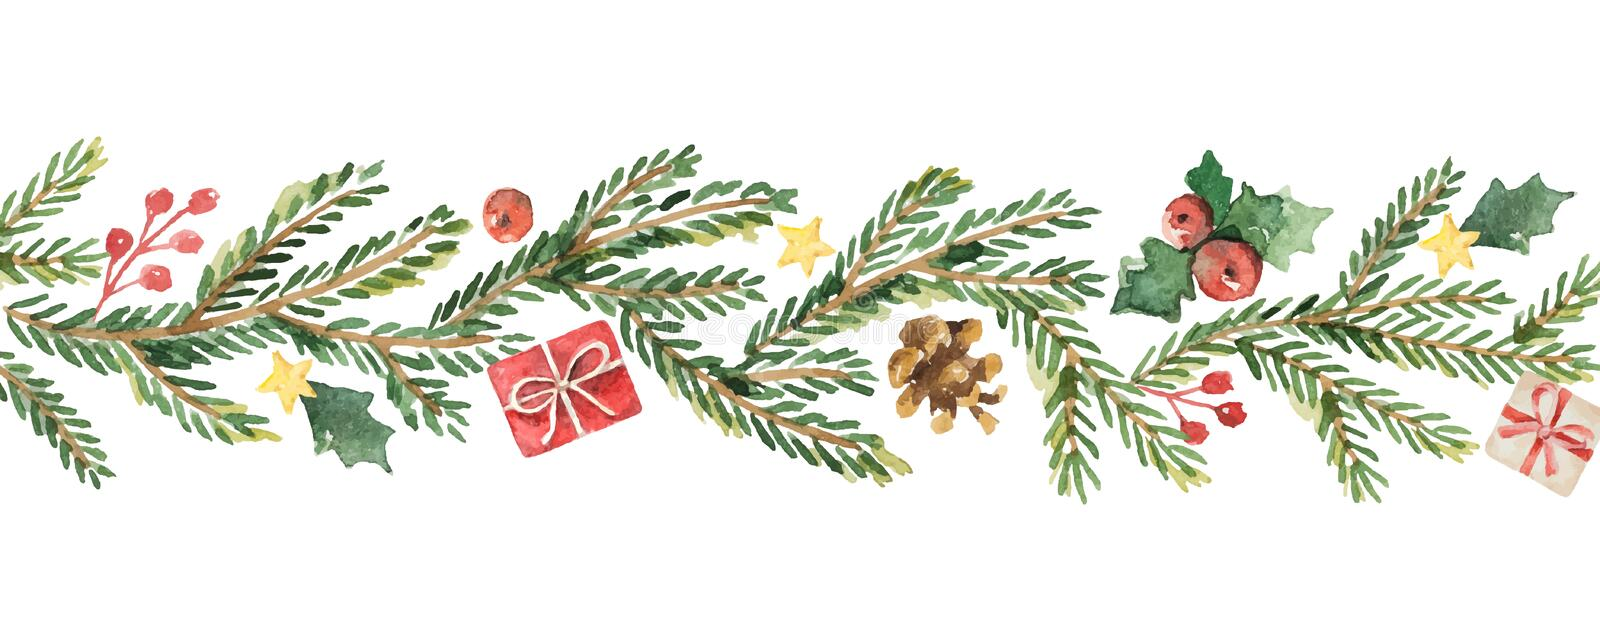 Watercolor vector Christmas banner with fir branches and place for text. vector illustration